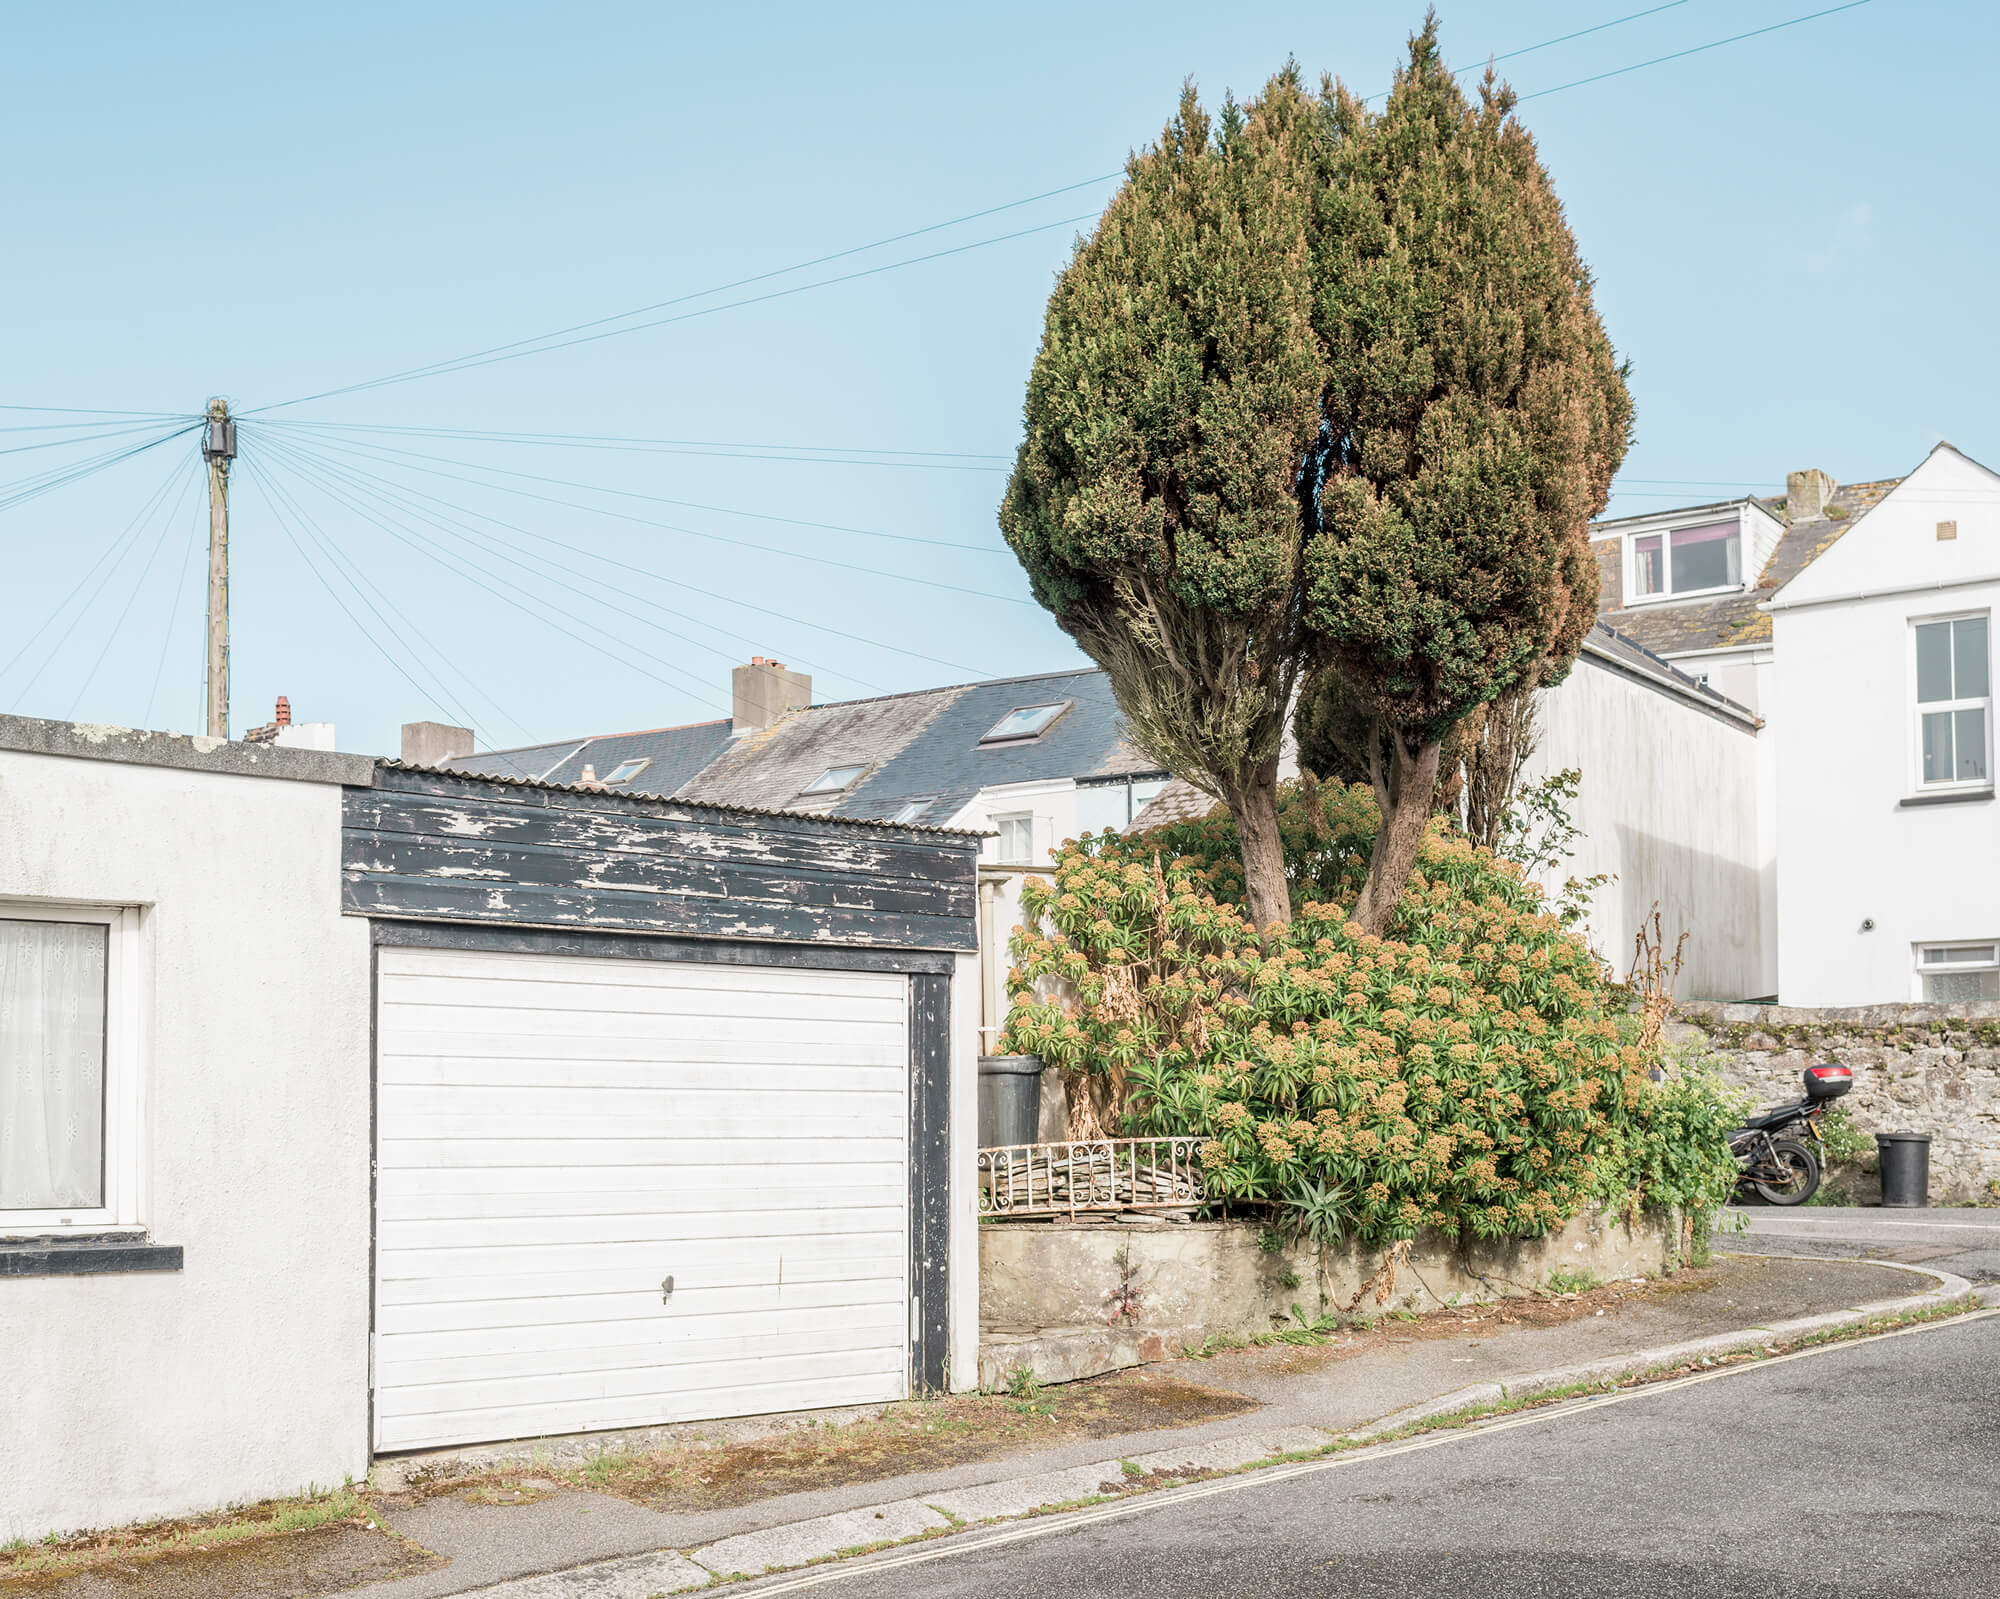 trees and garage in sunlight in Cornwall